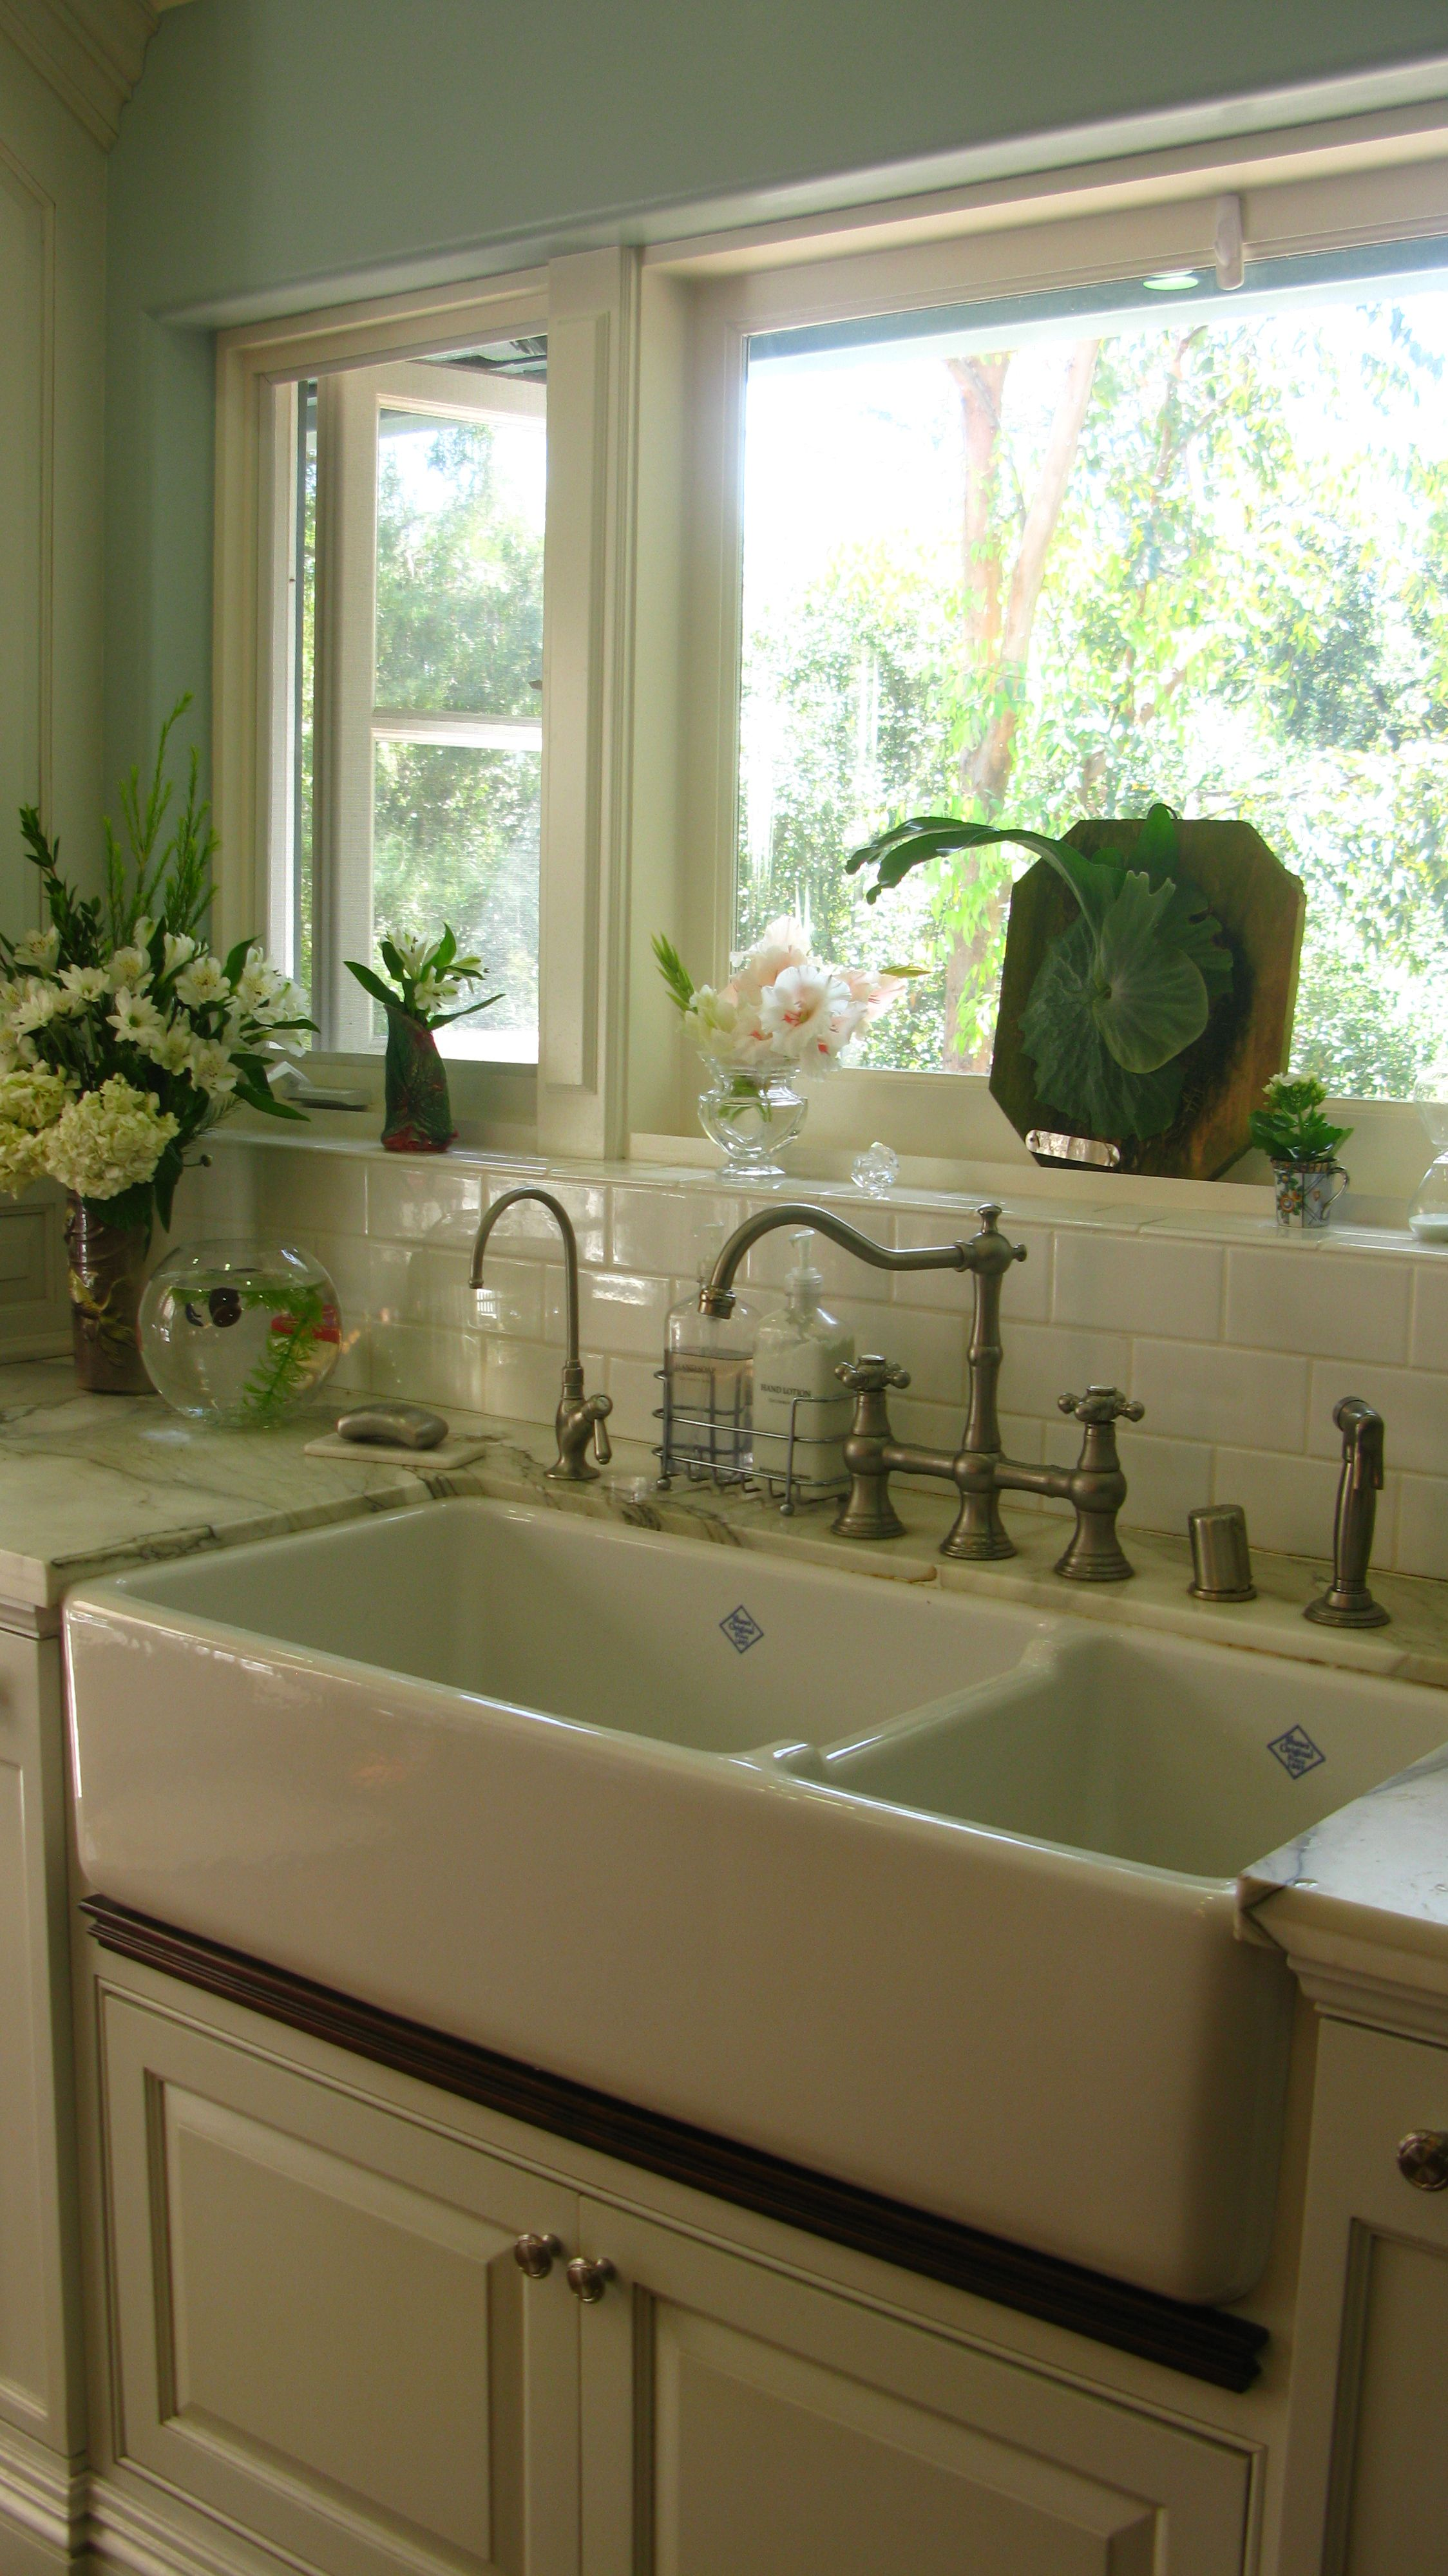 love that double sink and polished hardward kitchen sink decor farmhouse sink kitchen on kitchen decor over sink id=57107